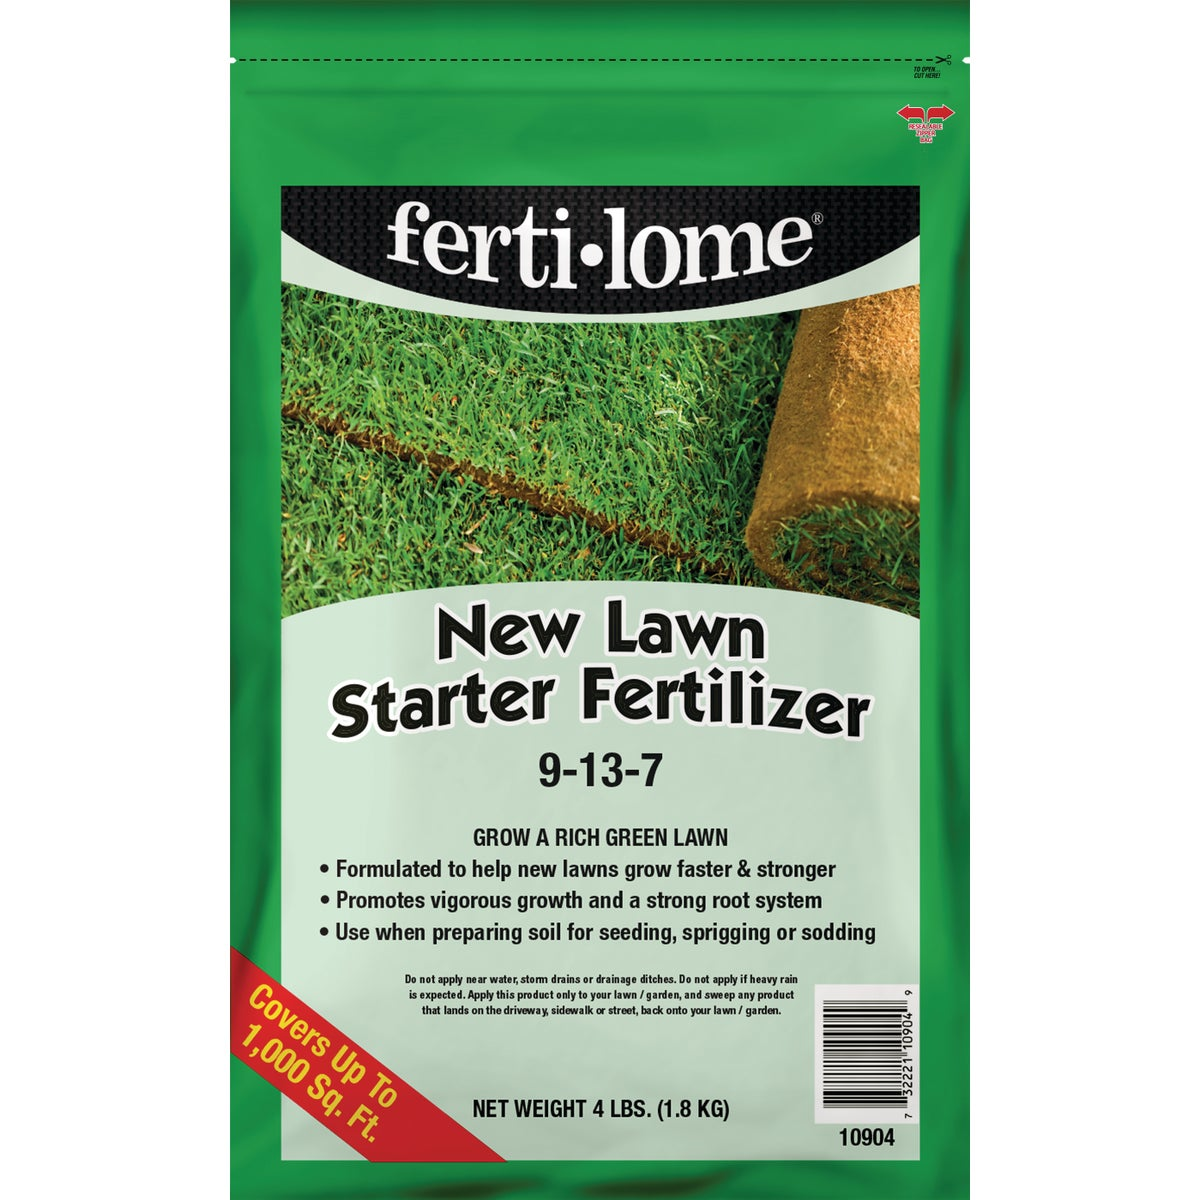 4LB NEW LAWN STARTER - 10904 by Vpg Fertilome